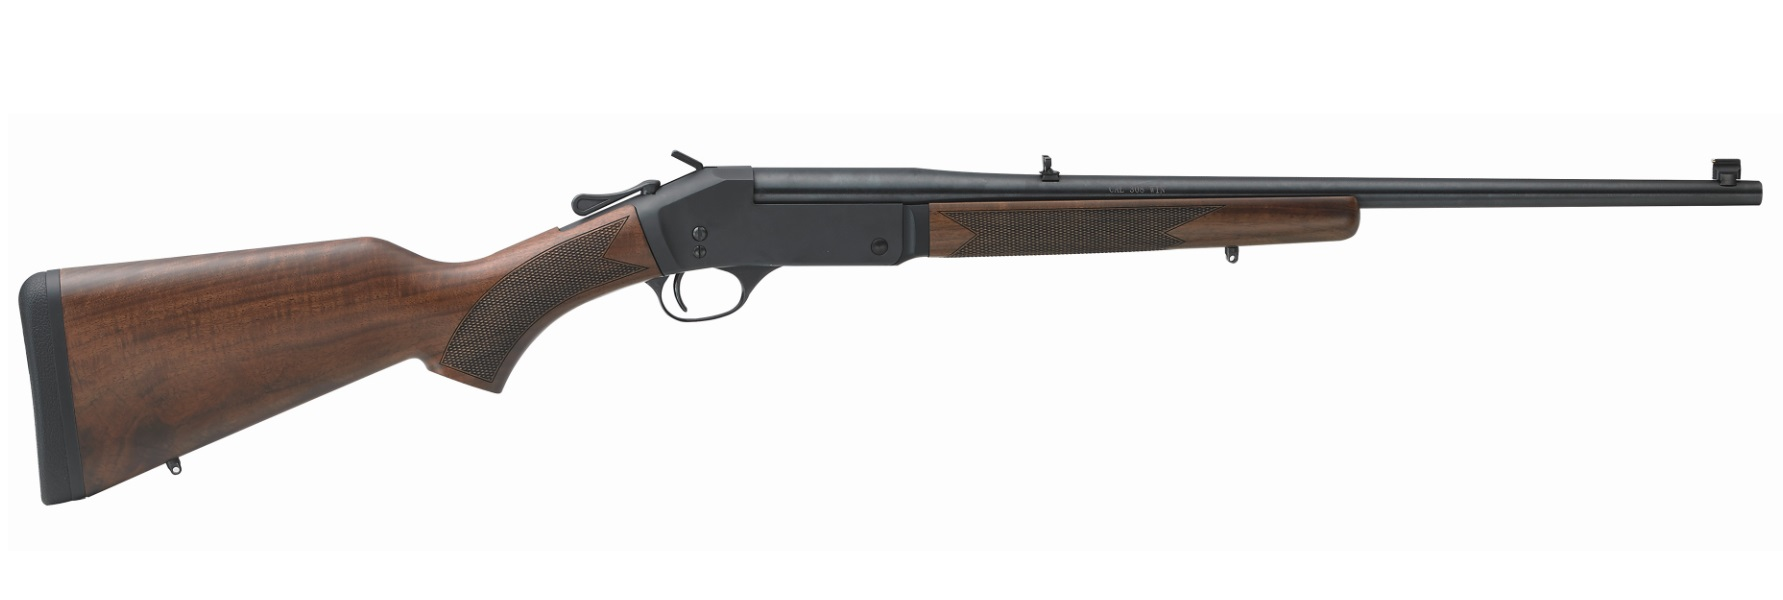 Henry Repeating Arms HENRY SINGLESHOT RIFLE 357 MAGNUM   38 SPECIAL